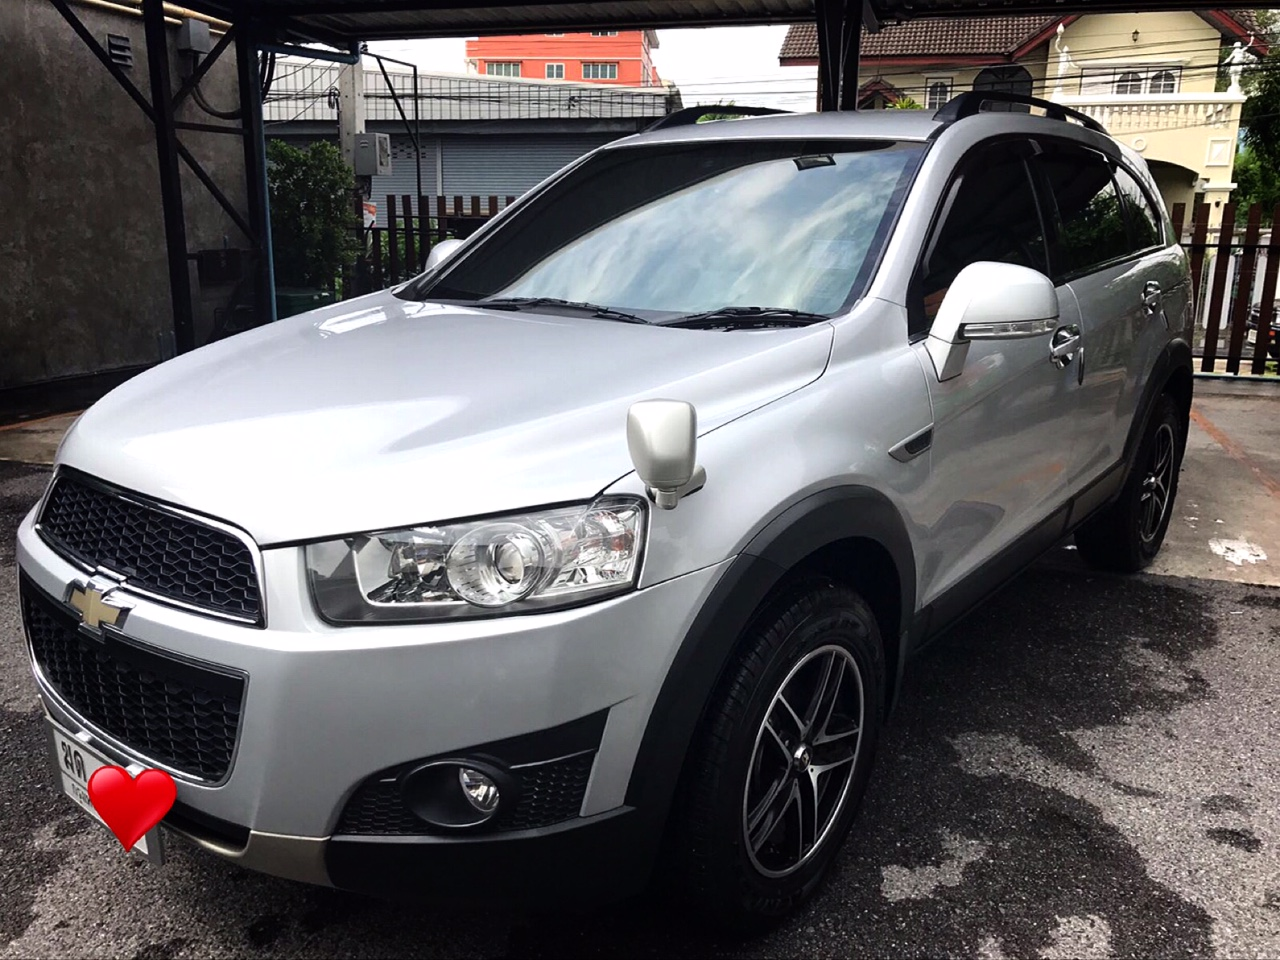 Cheap Chevrolet Captiva For Sale 599 000 Cars For Sale